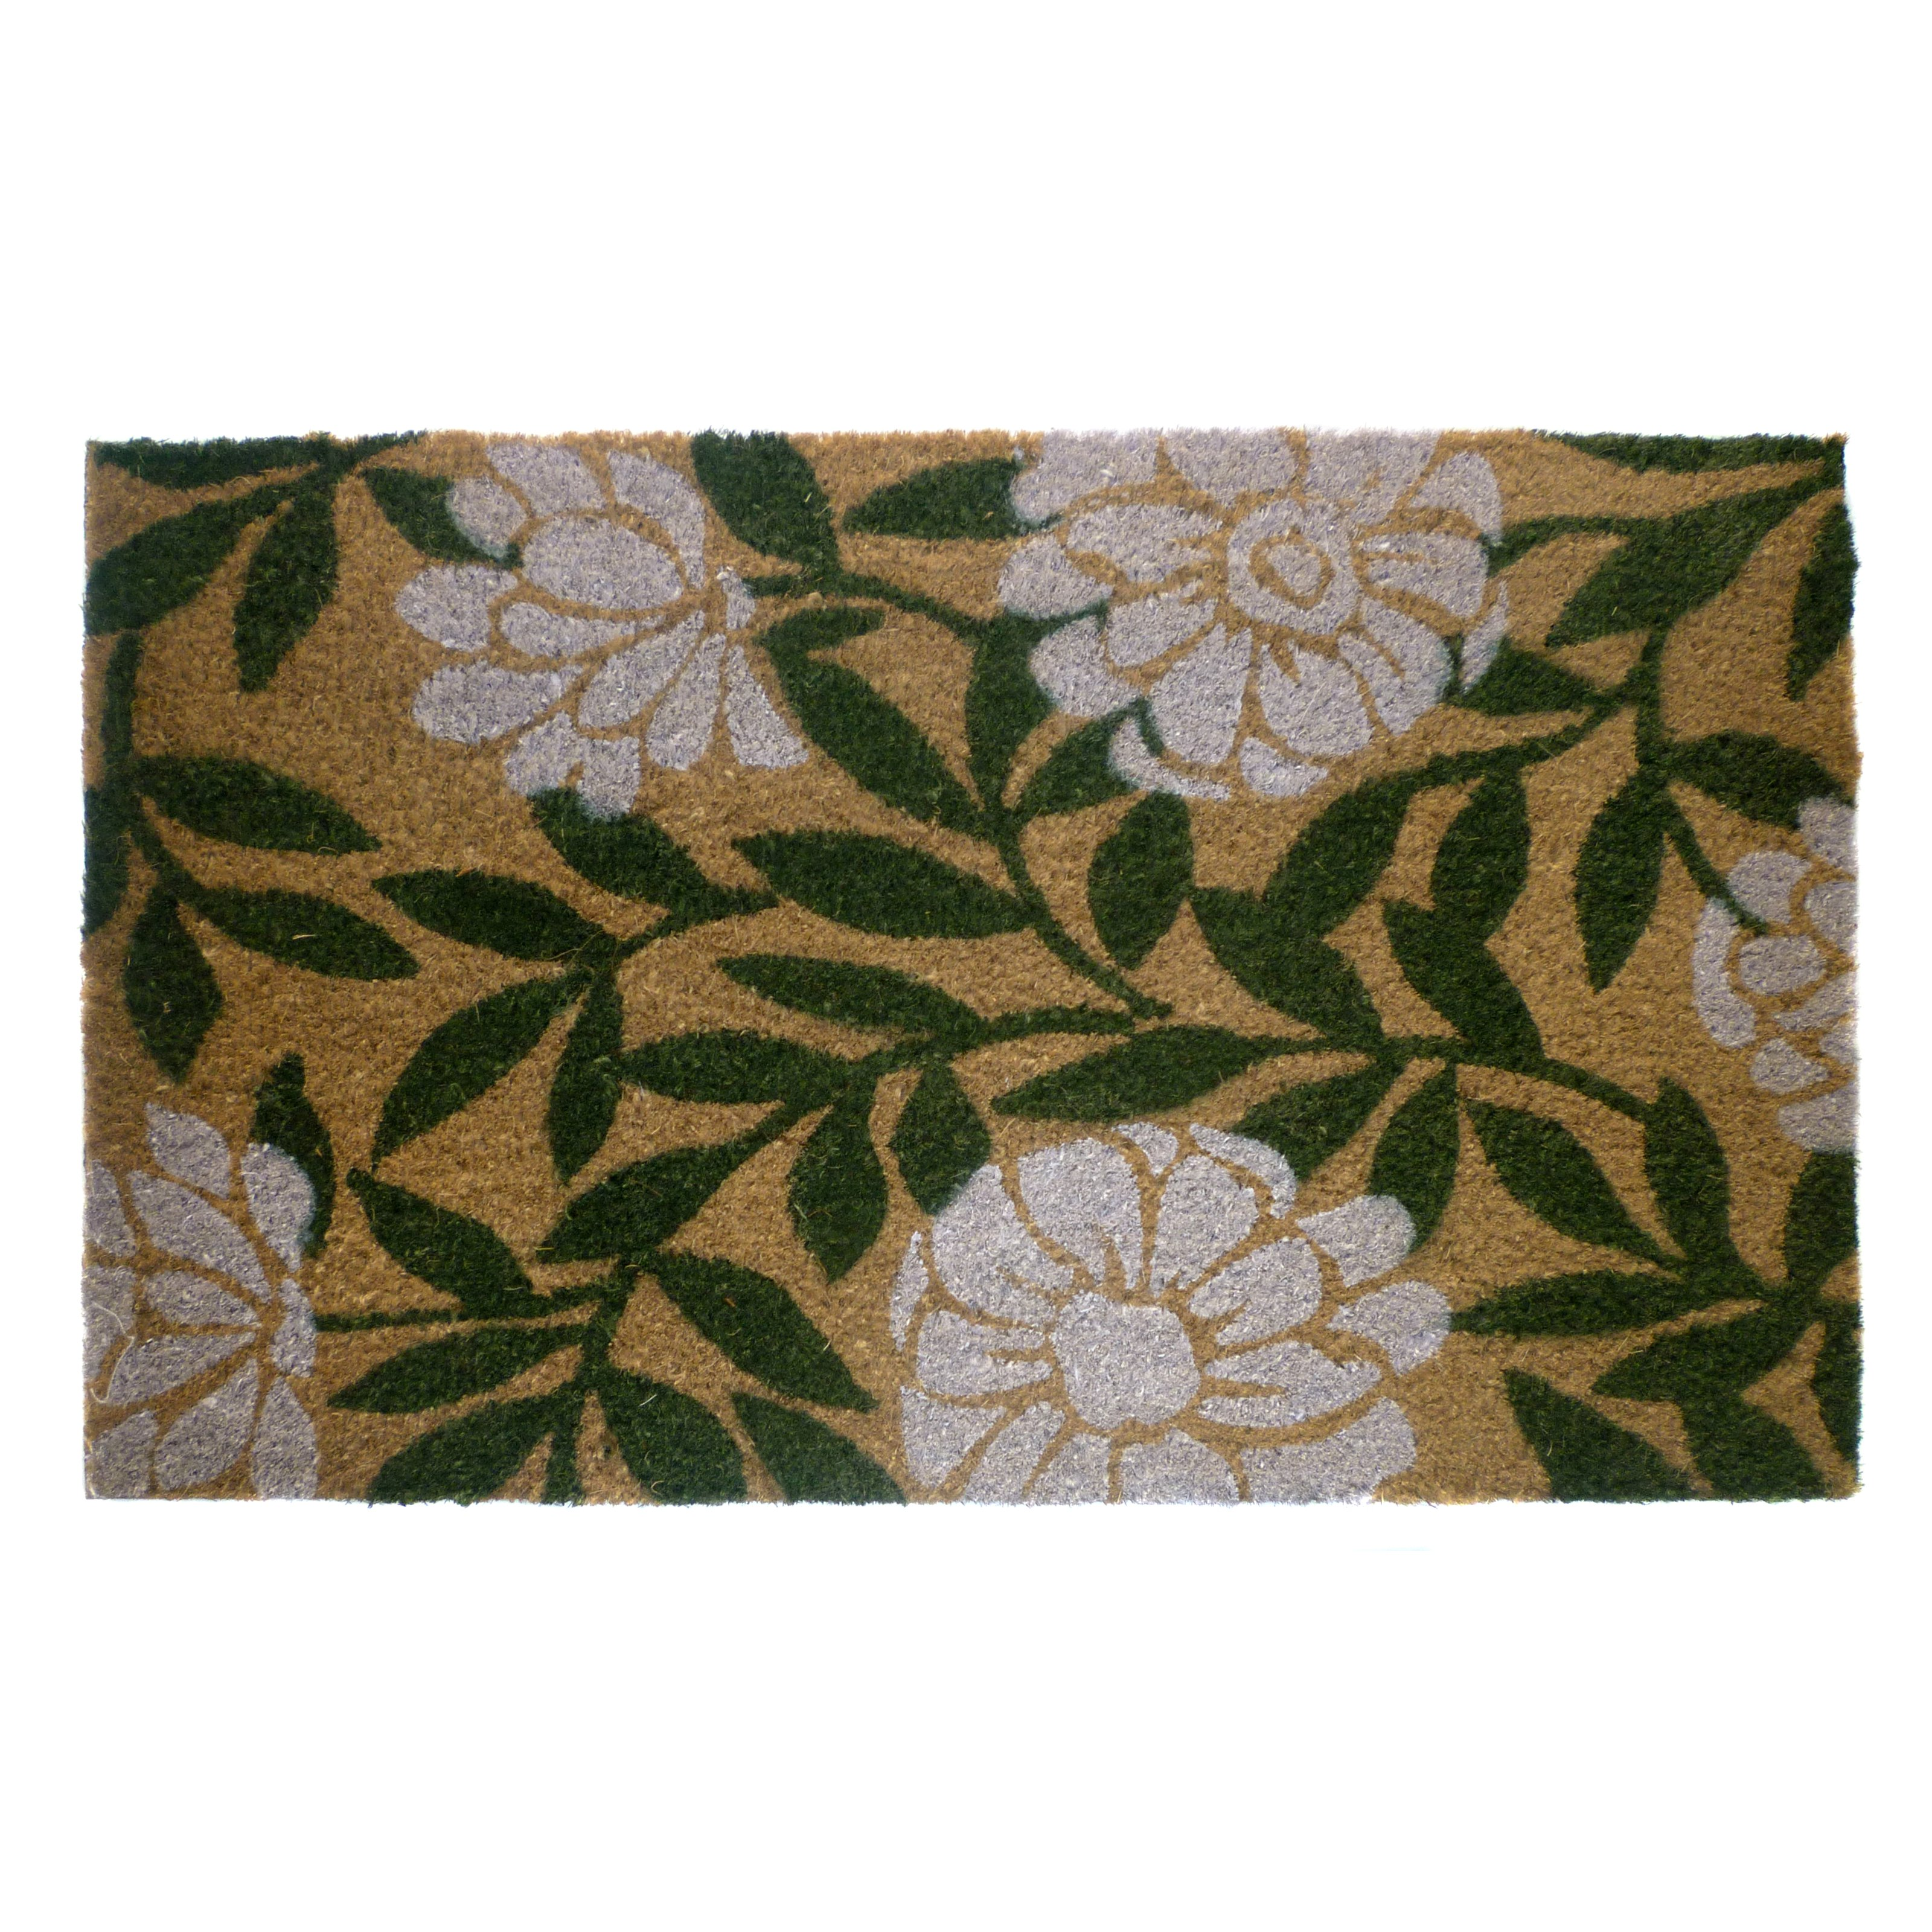 Geo Crafts Geraniums Doormat